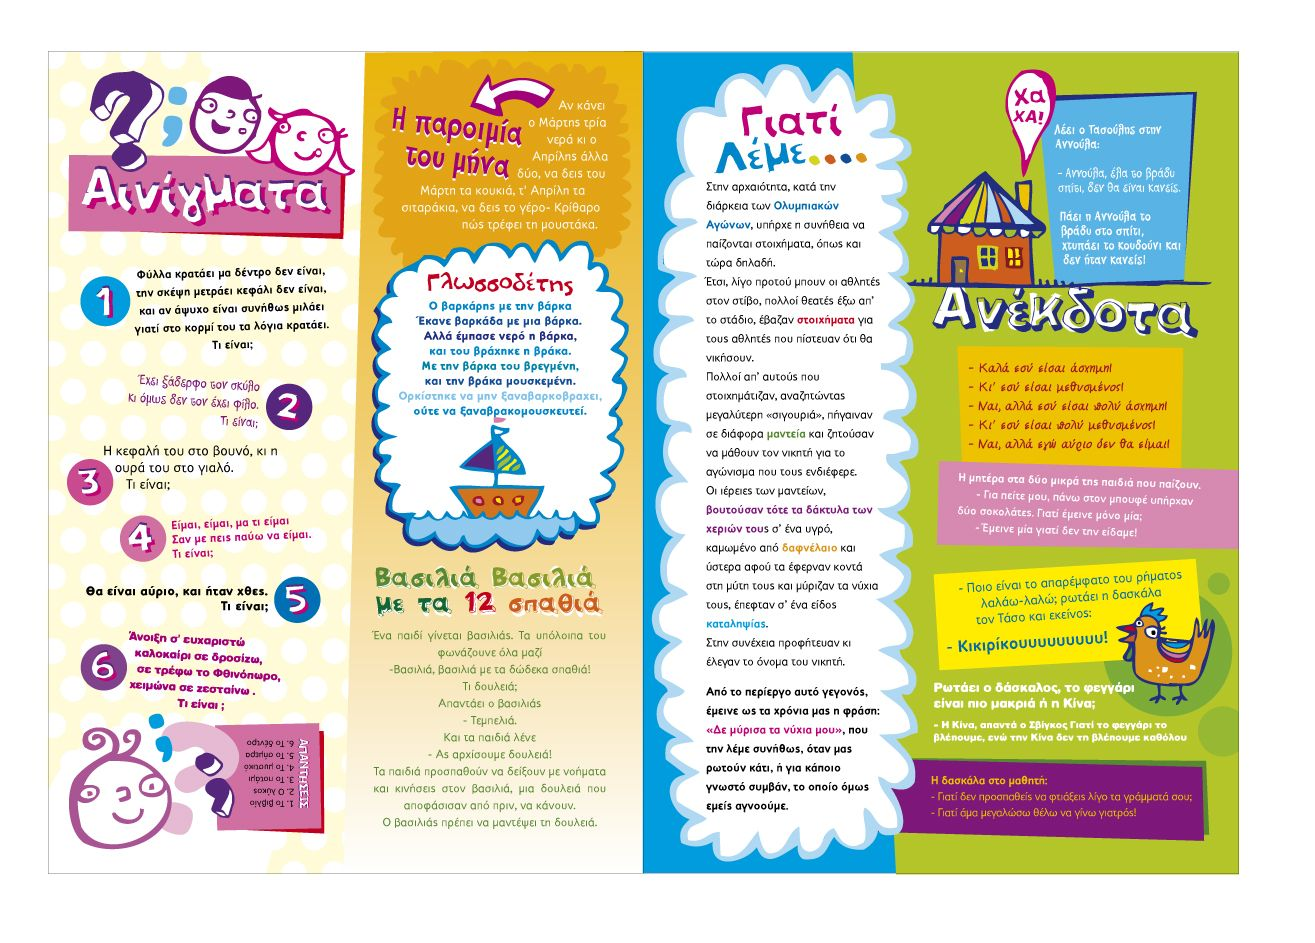 kindergarten flyer ad microsoft word template publisher graphic design magazine layout this is really interesting to me and would like to for